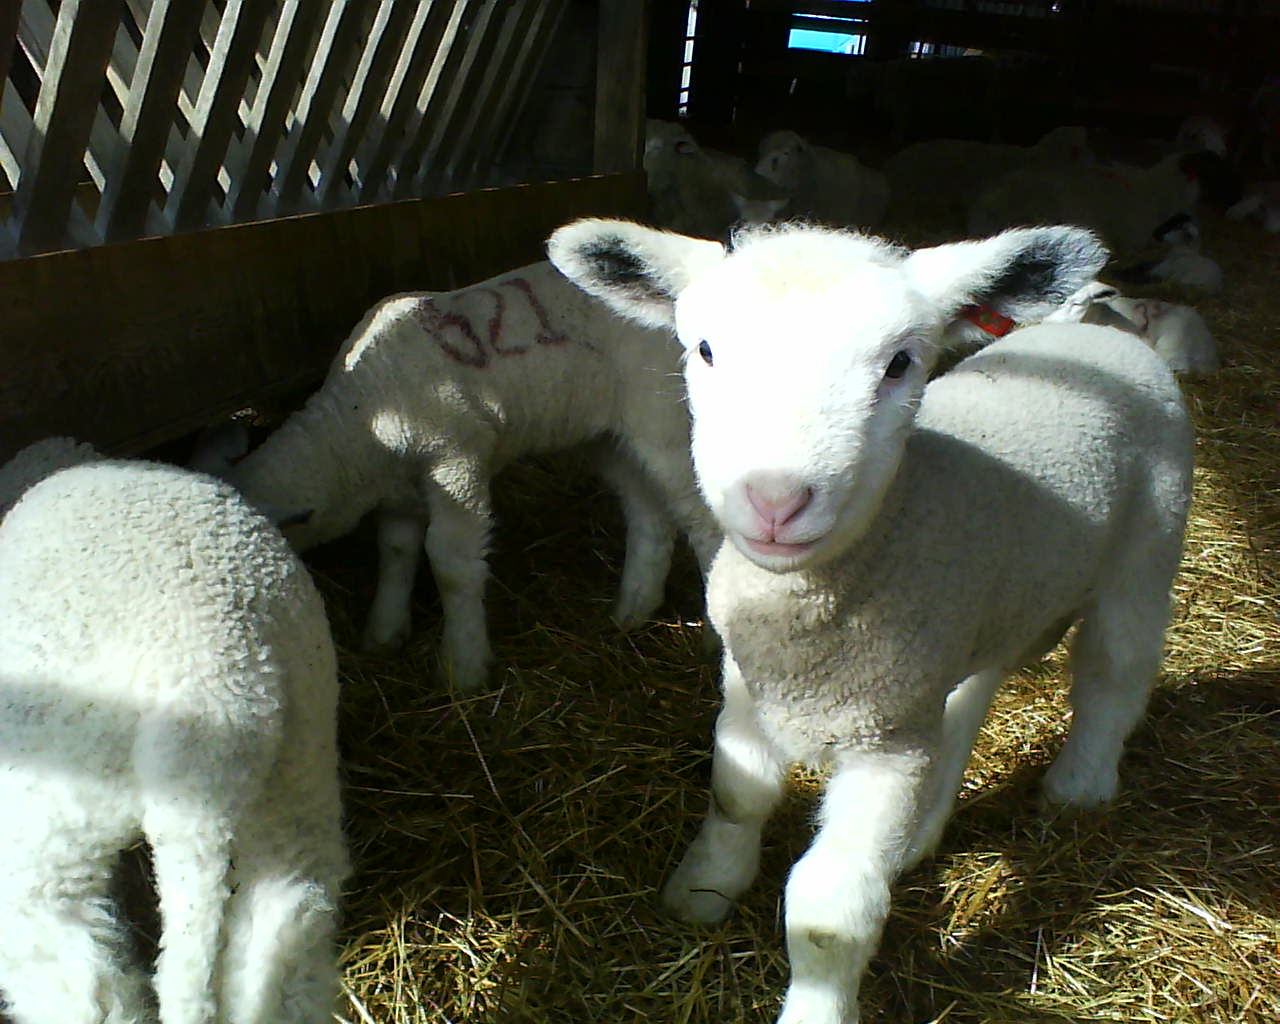 A new lamb just born at the Oregon State Sheep Research Center